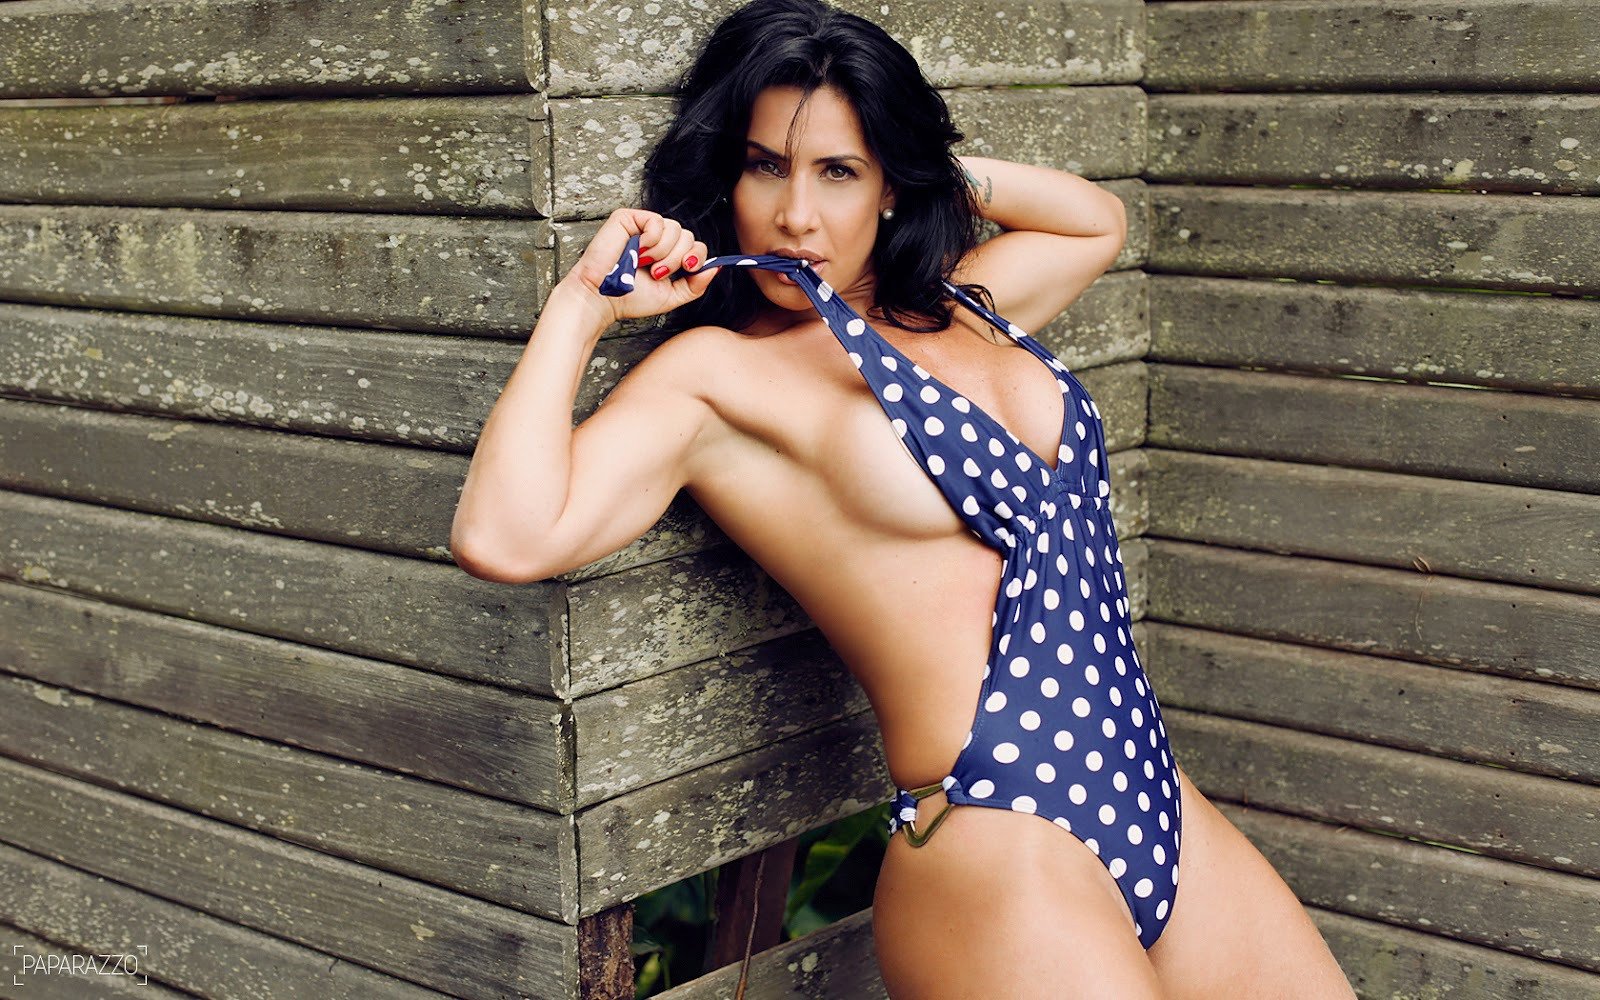 Pictures Of Scheila Carvalho